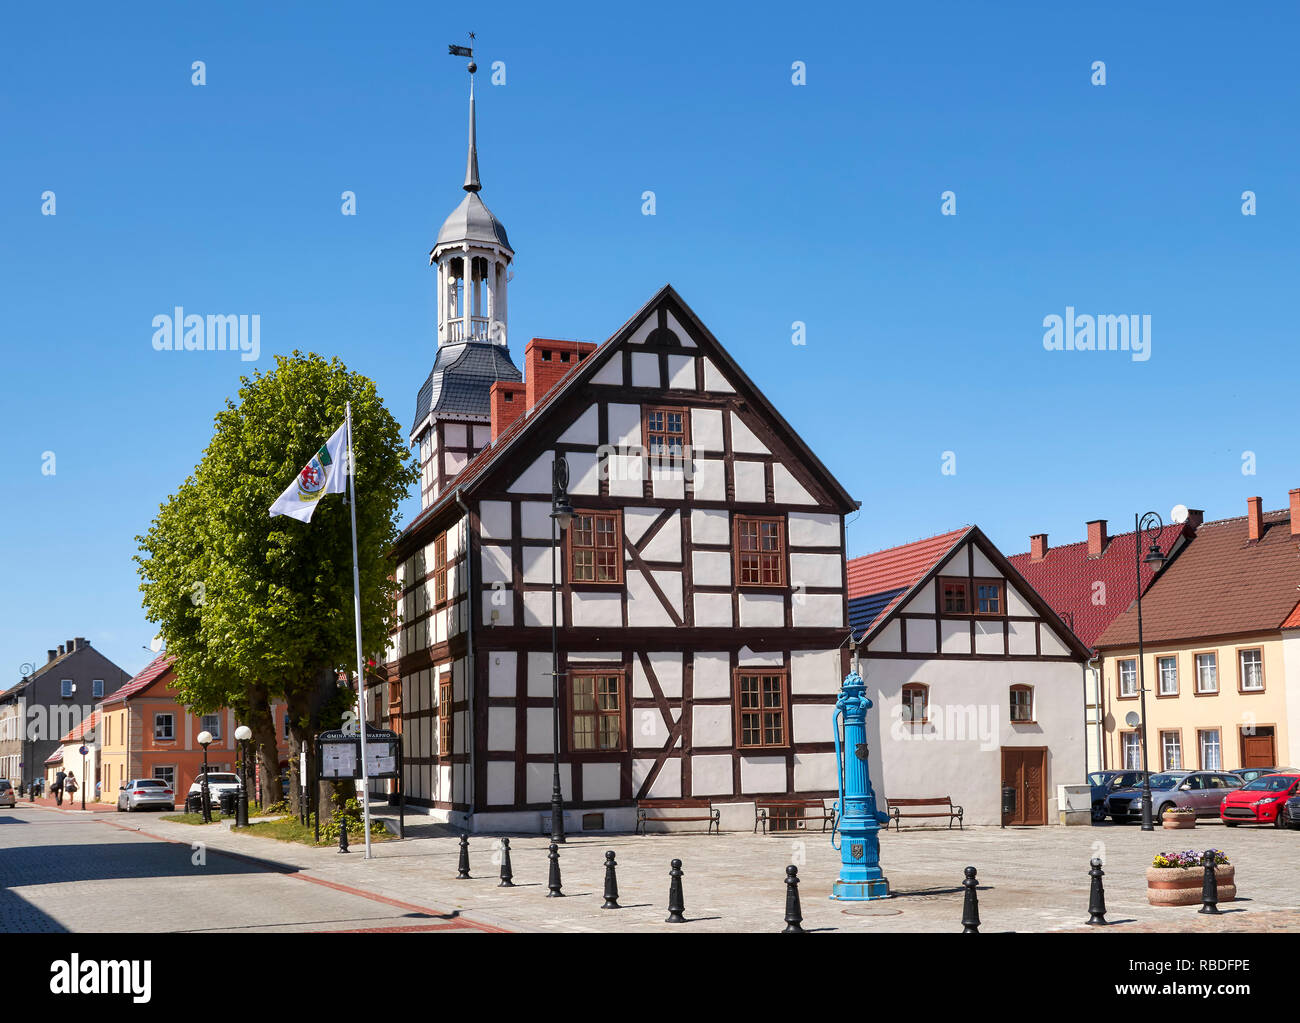 Town Hall in Nowe Warpno on a sunny day, Poland. Stock Photo